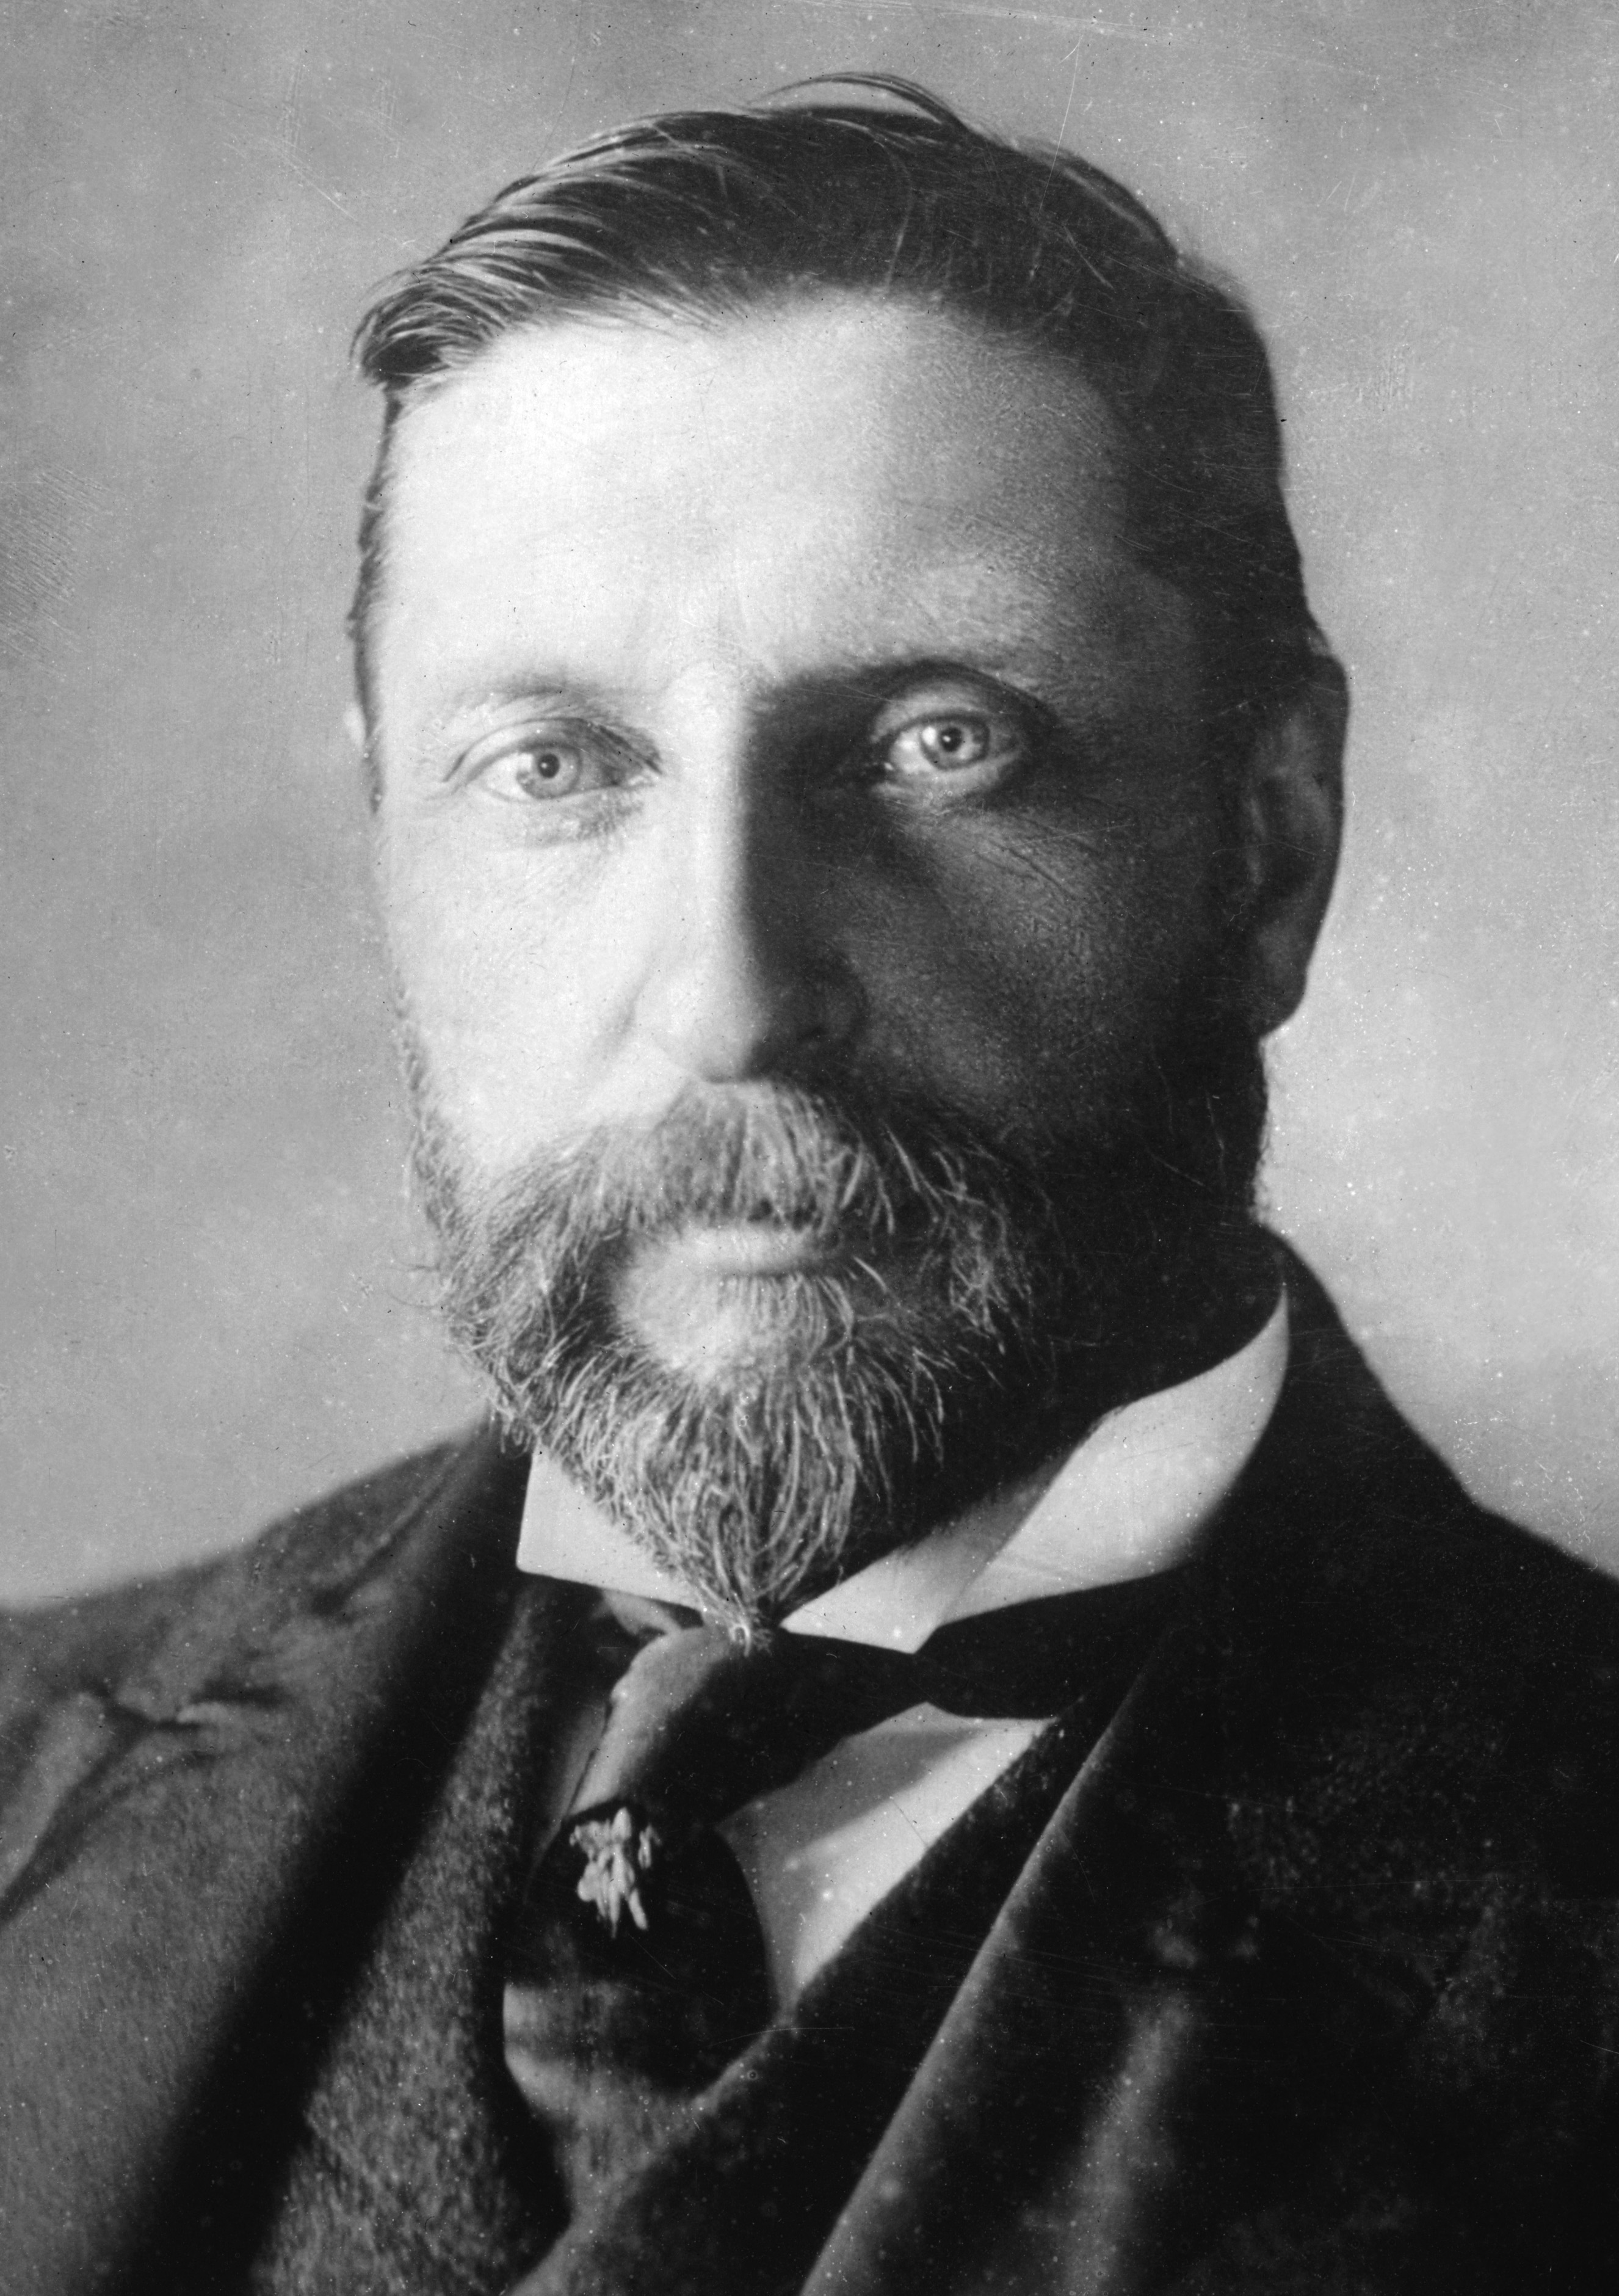 Portrait of H. Rider Haggard